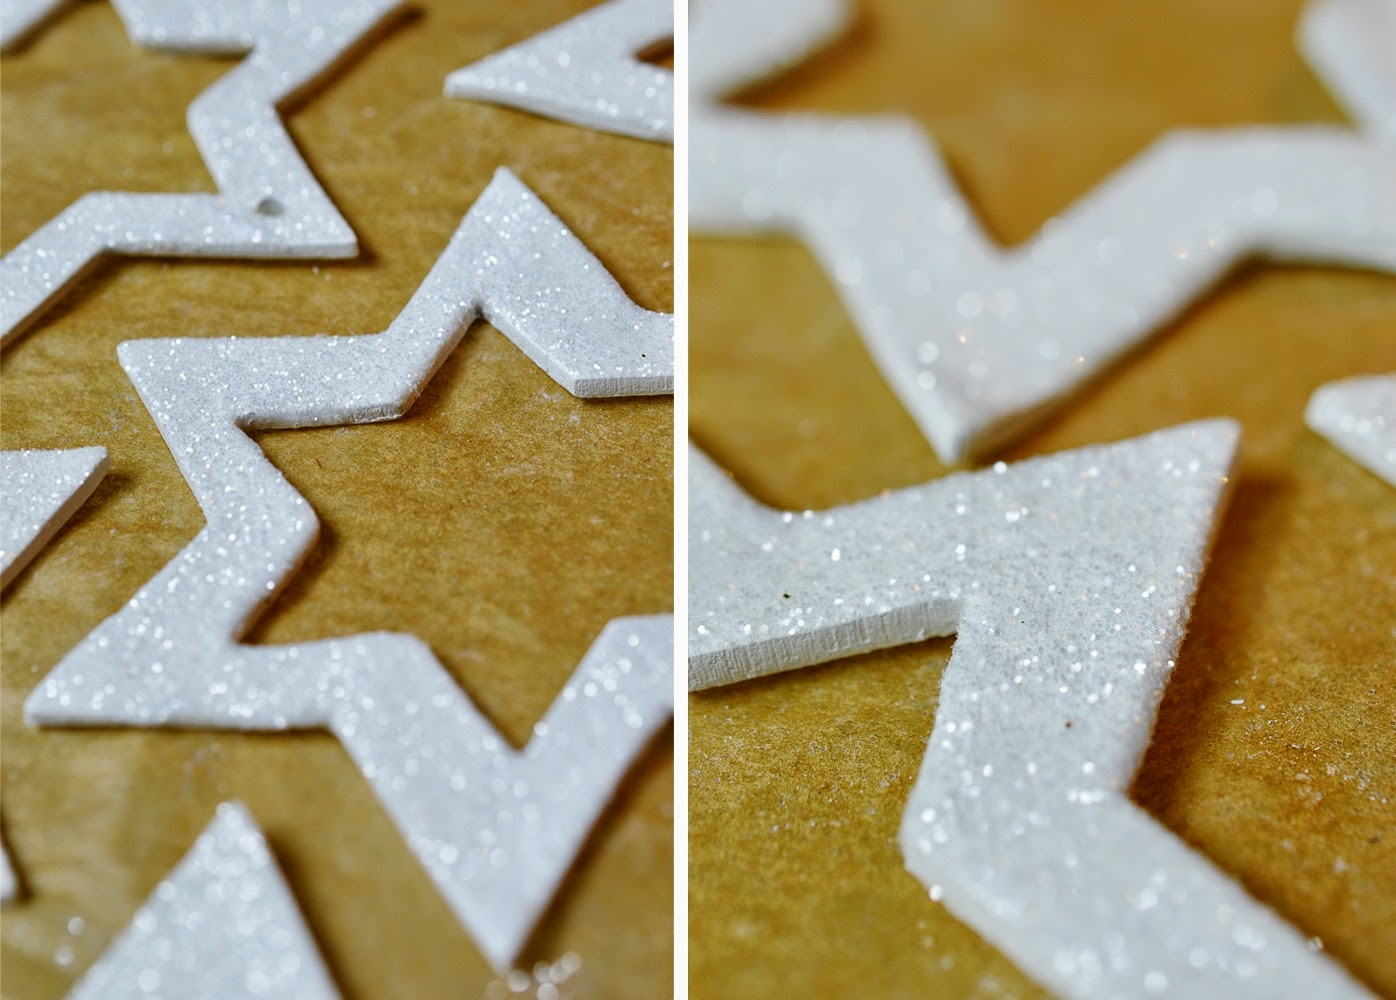 DIY Clay Star Orgnaments | Motte's Blog